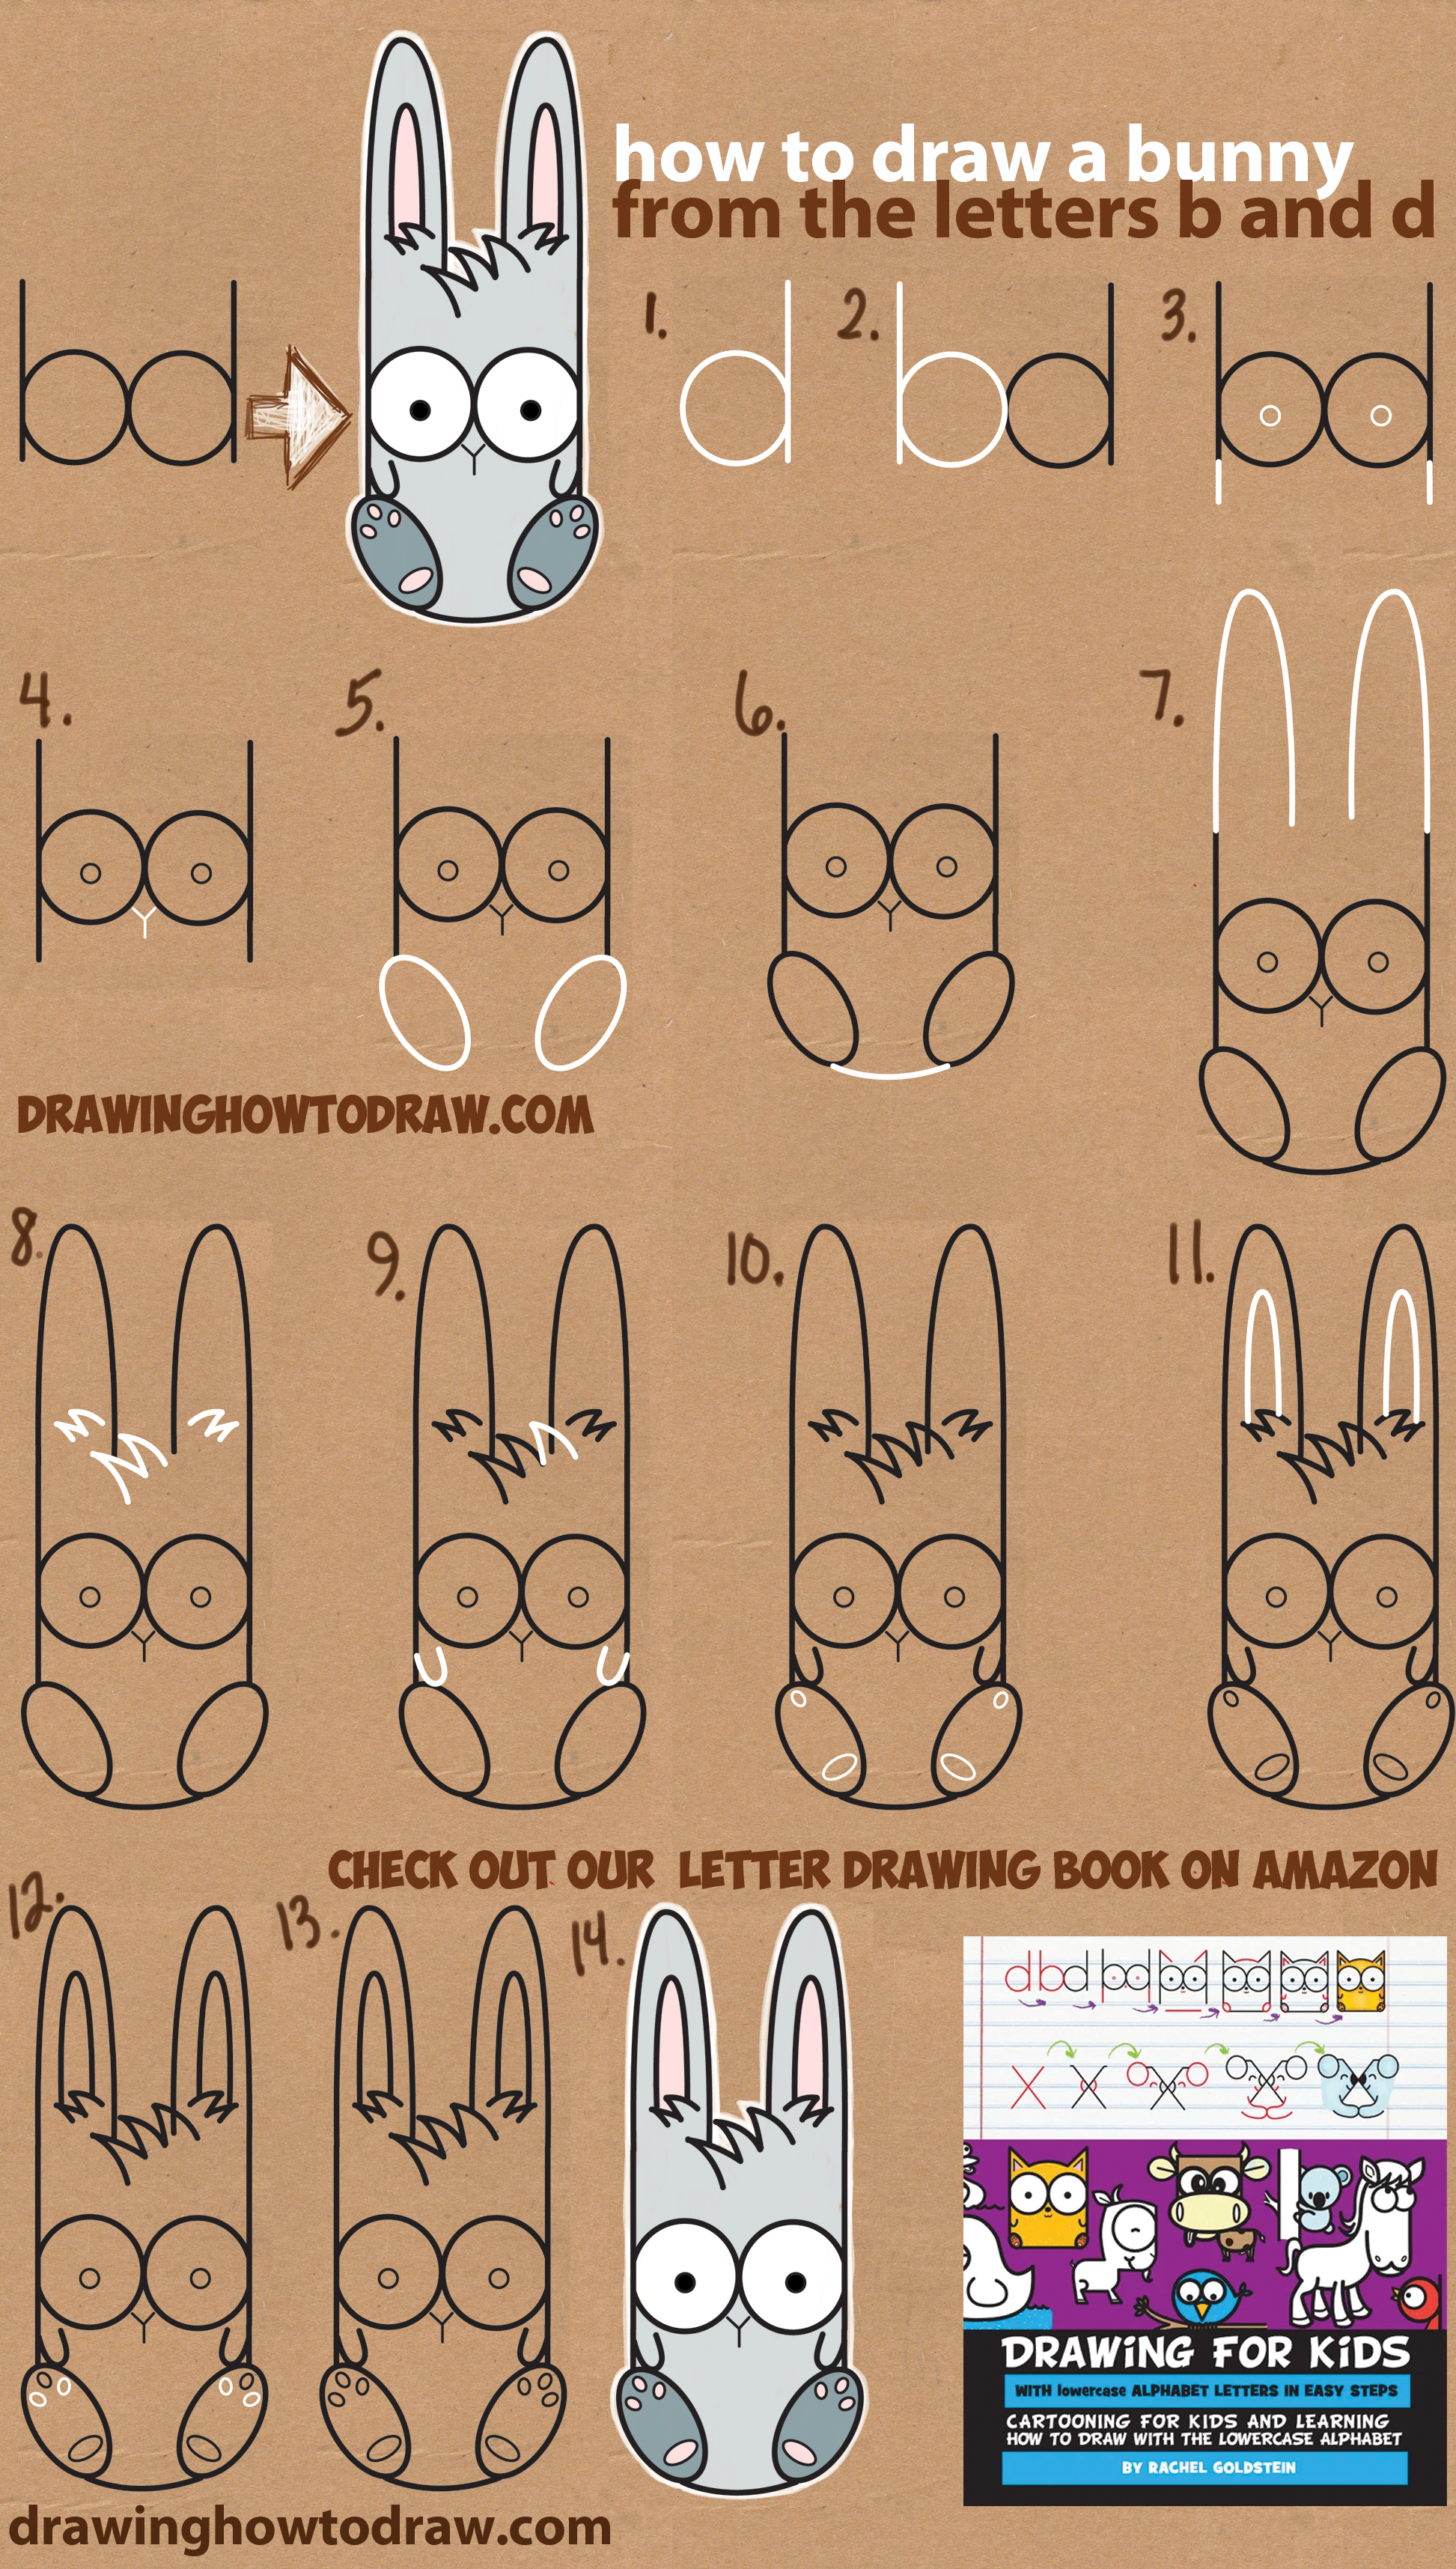 How To Draw A Cute Cartoon Bunny Using Lowercase Letters B And D  Easy Step